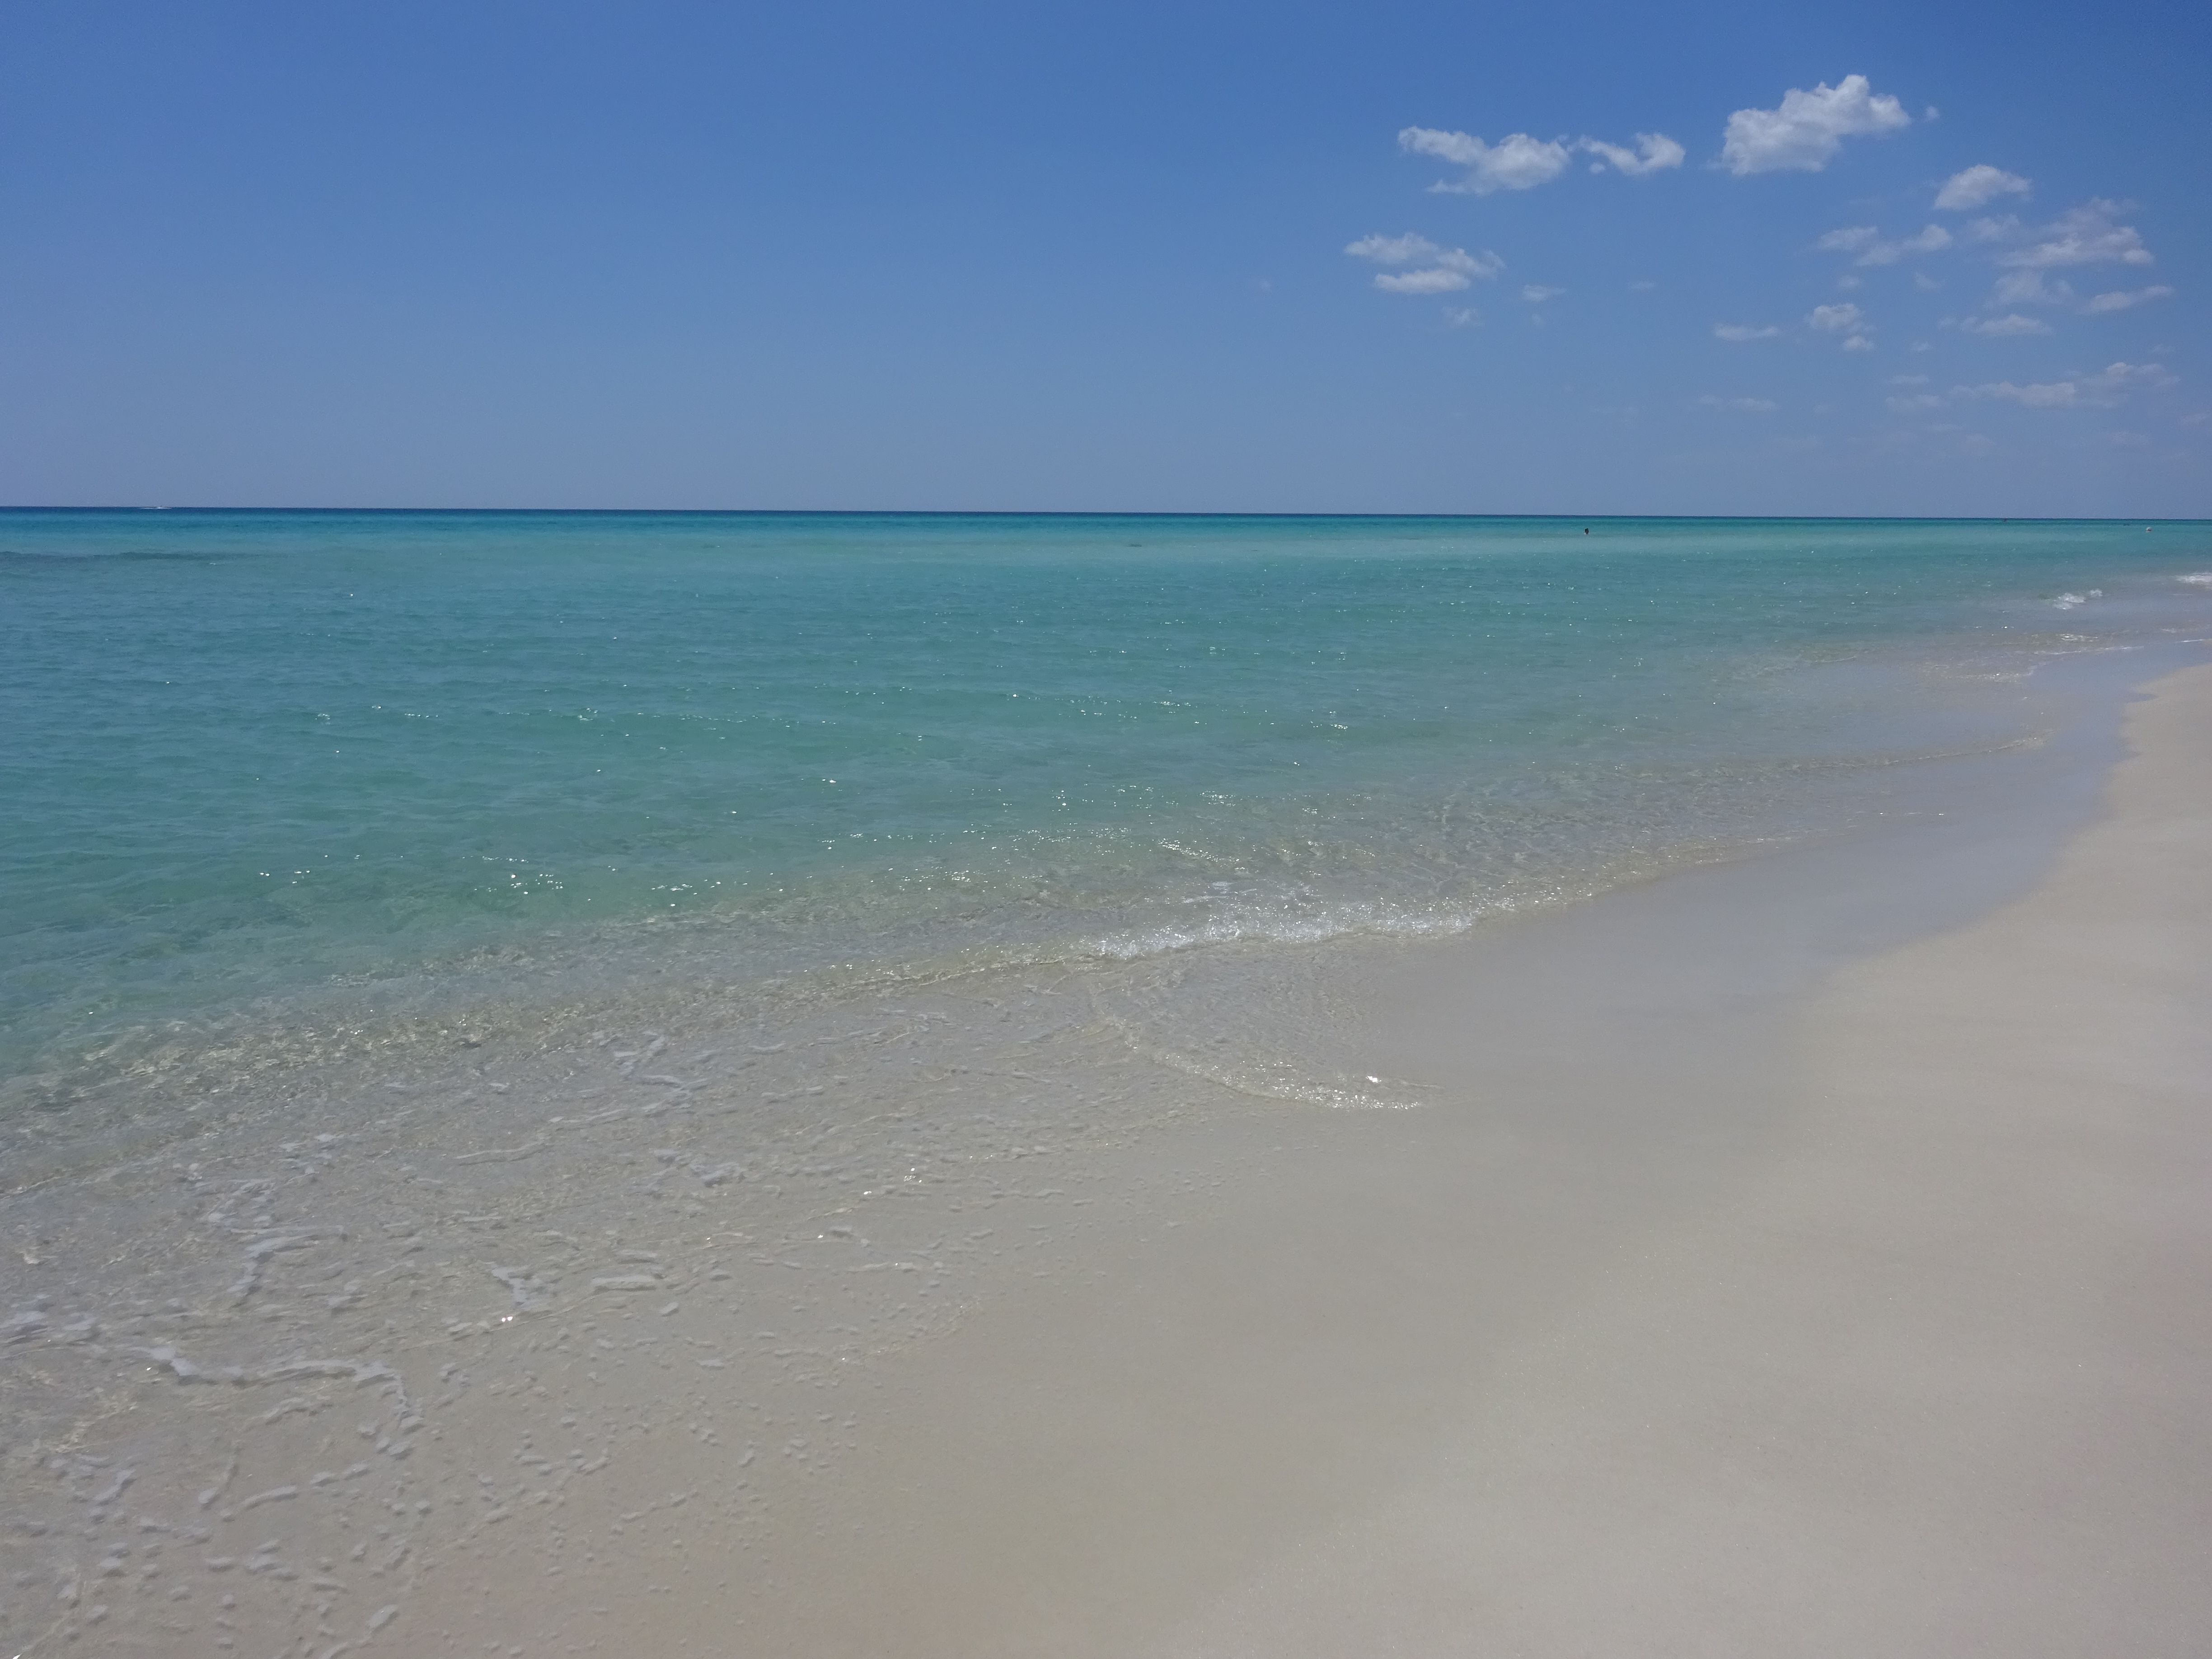 Crystal Clear Water In Panama City Beach Panamacitybeach Florida Beach Panama City Beach Resorts Panama City Beach Panama City Beach Hotels